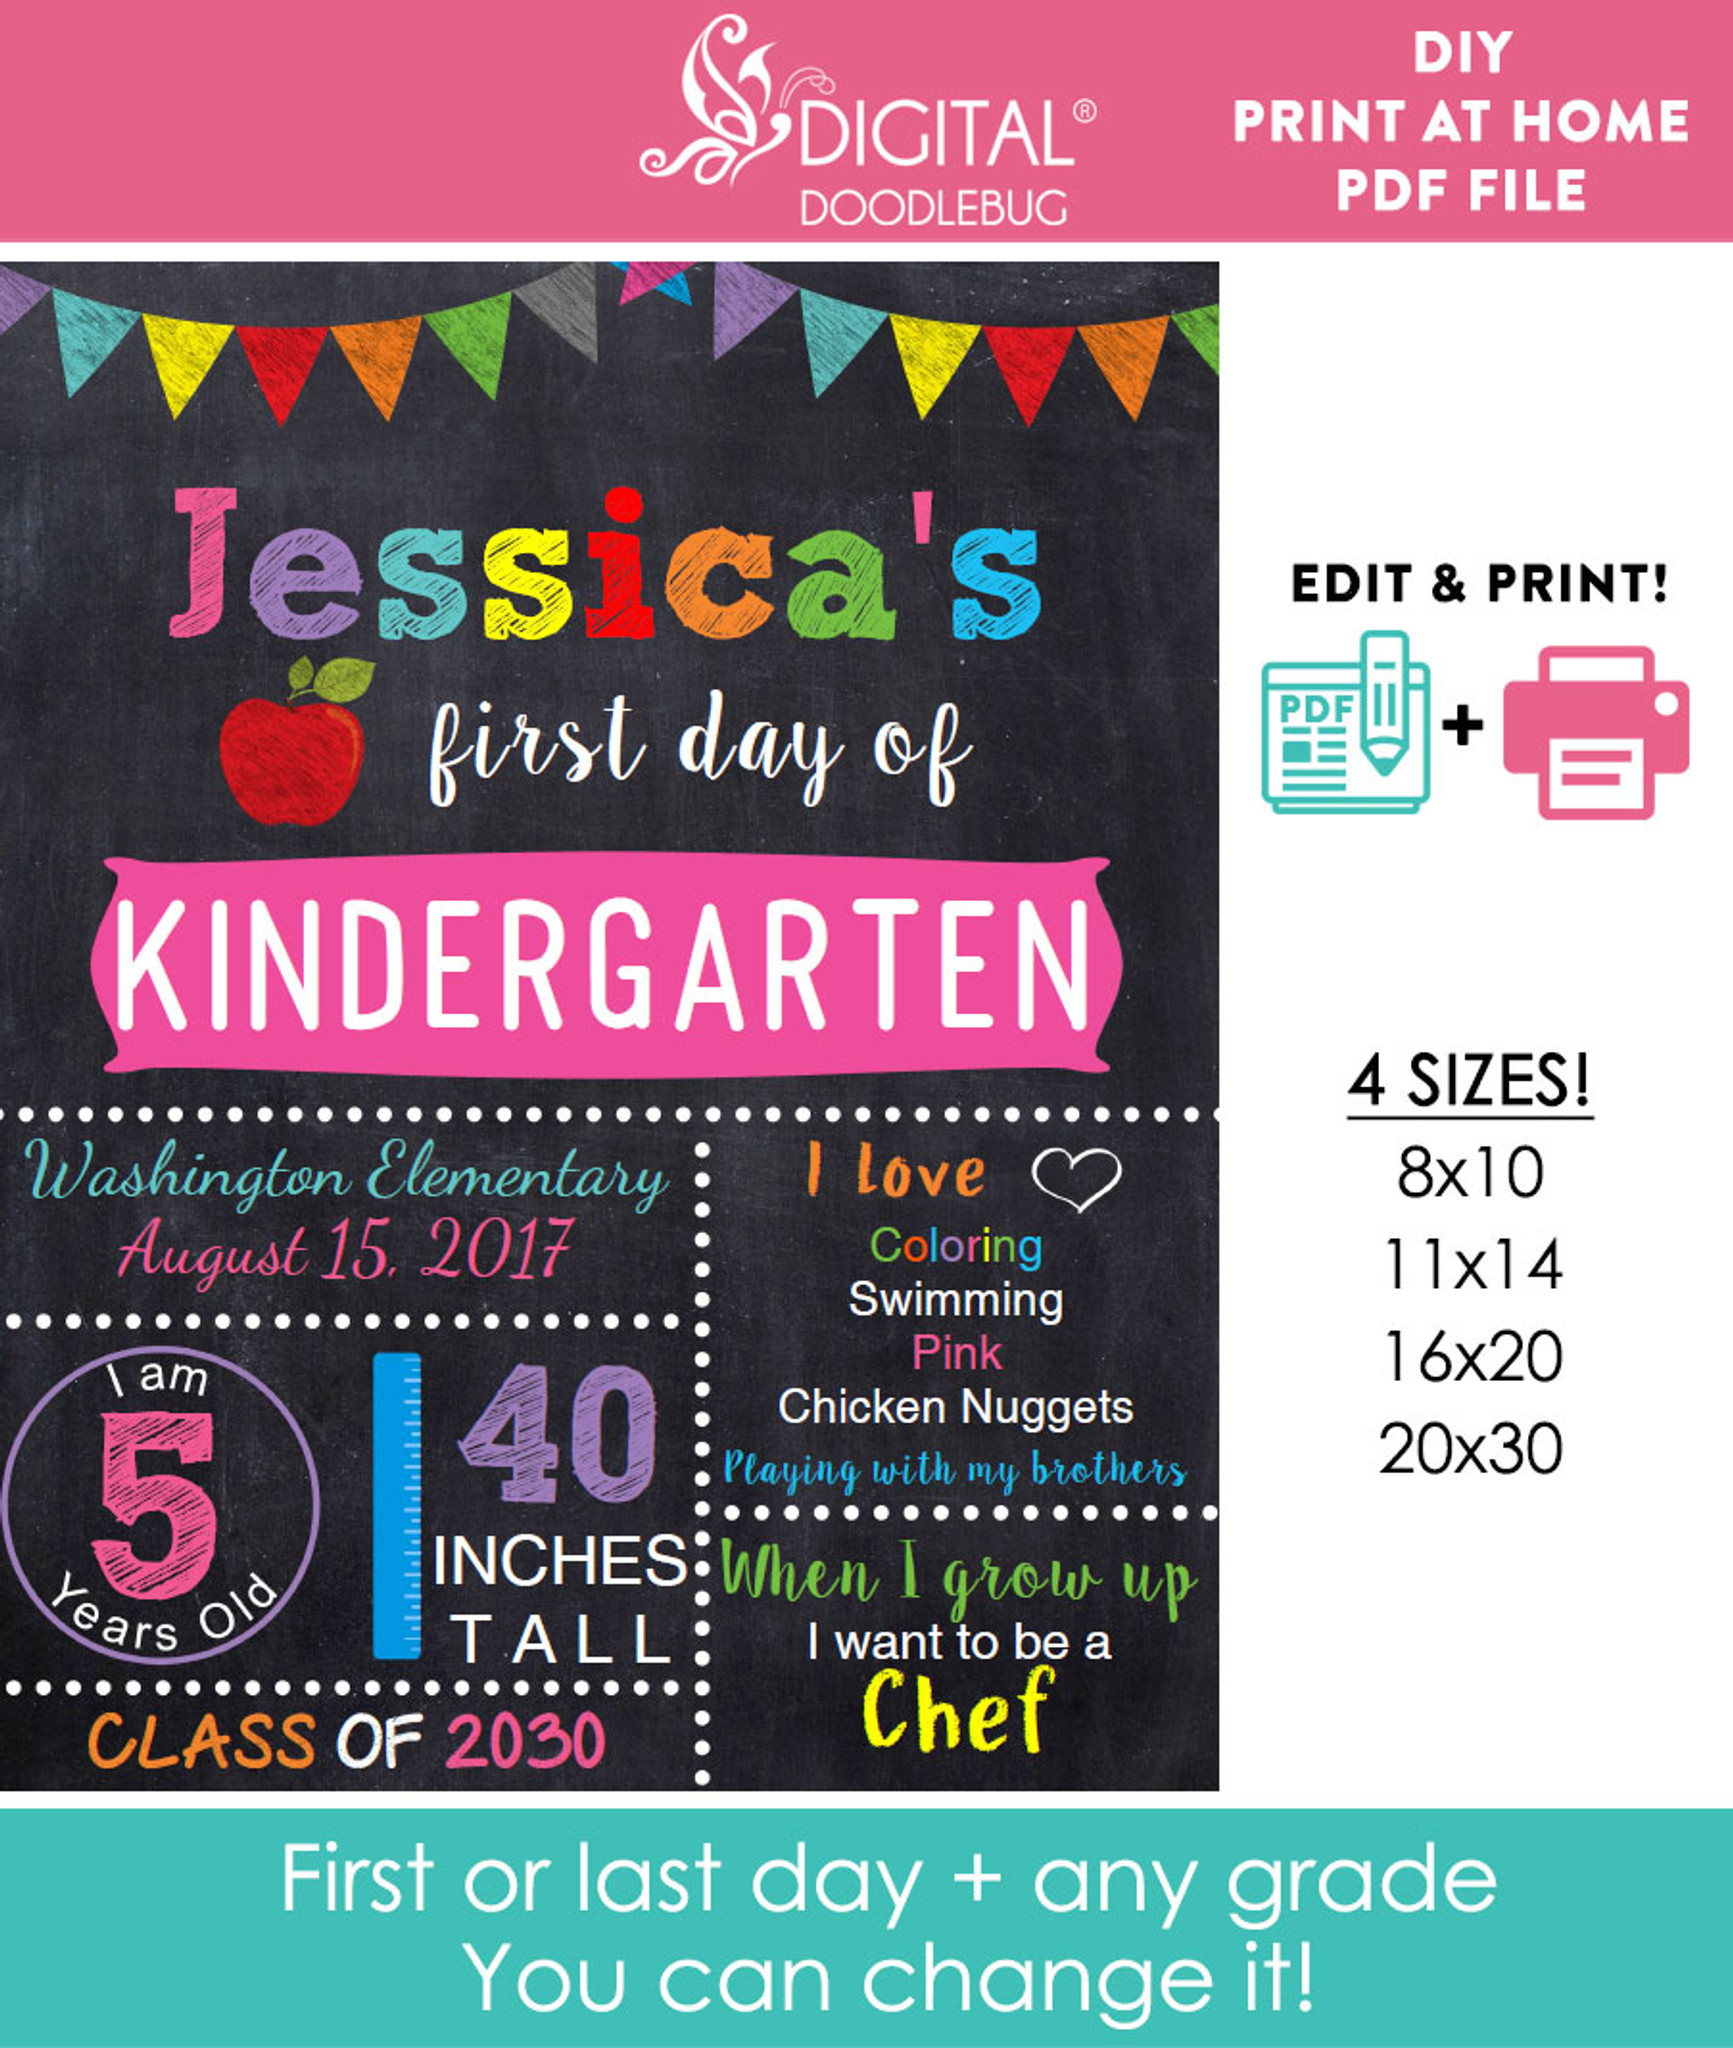 editable girls first day of school sign printable chalkboard poster 16x20